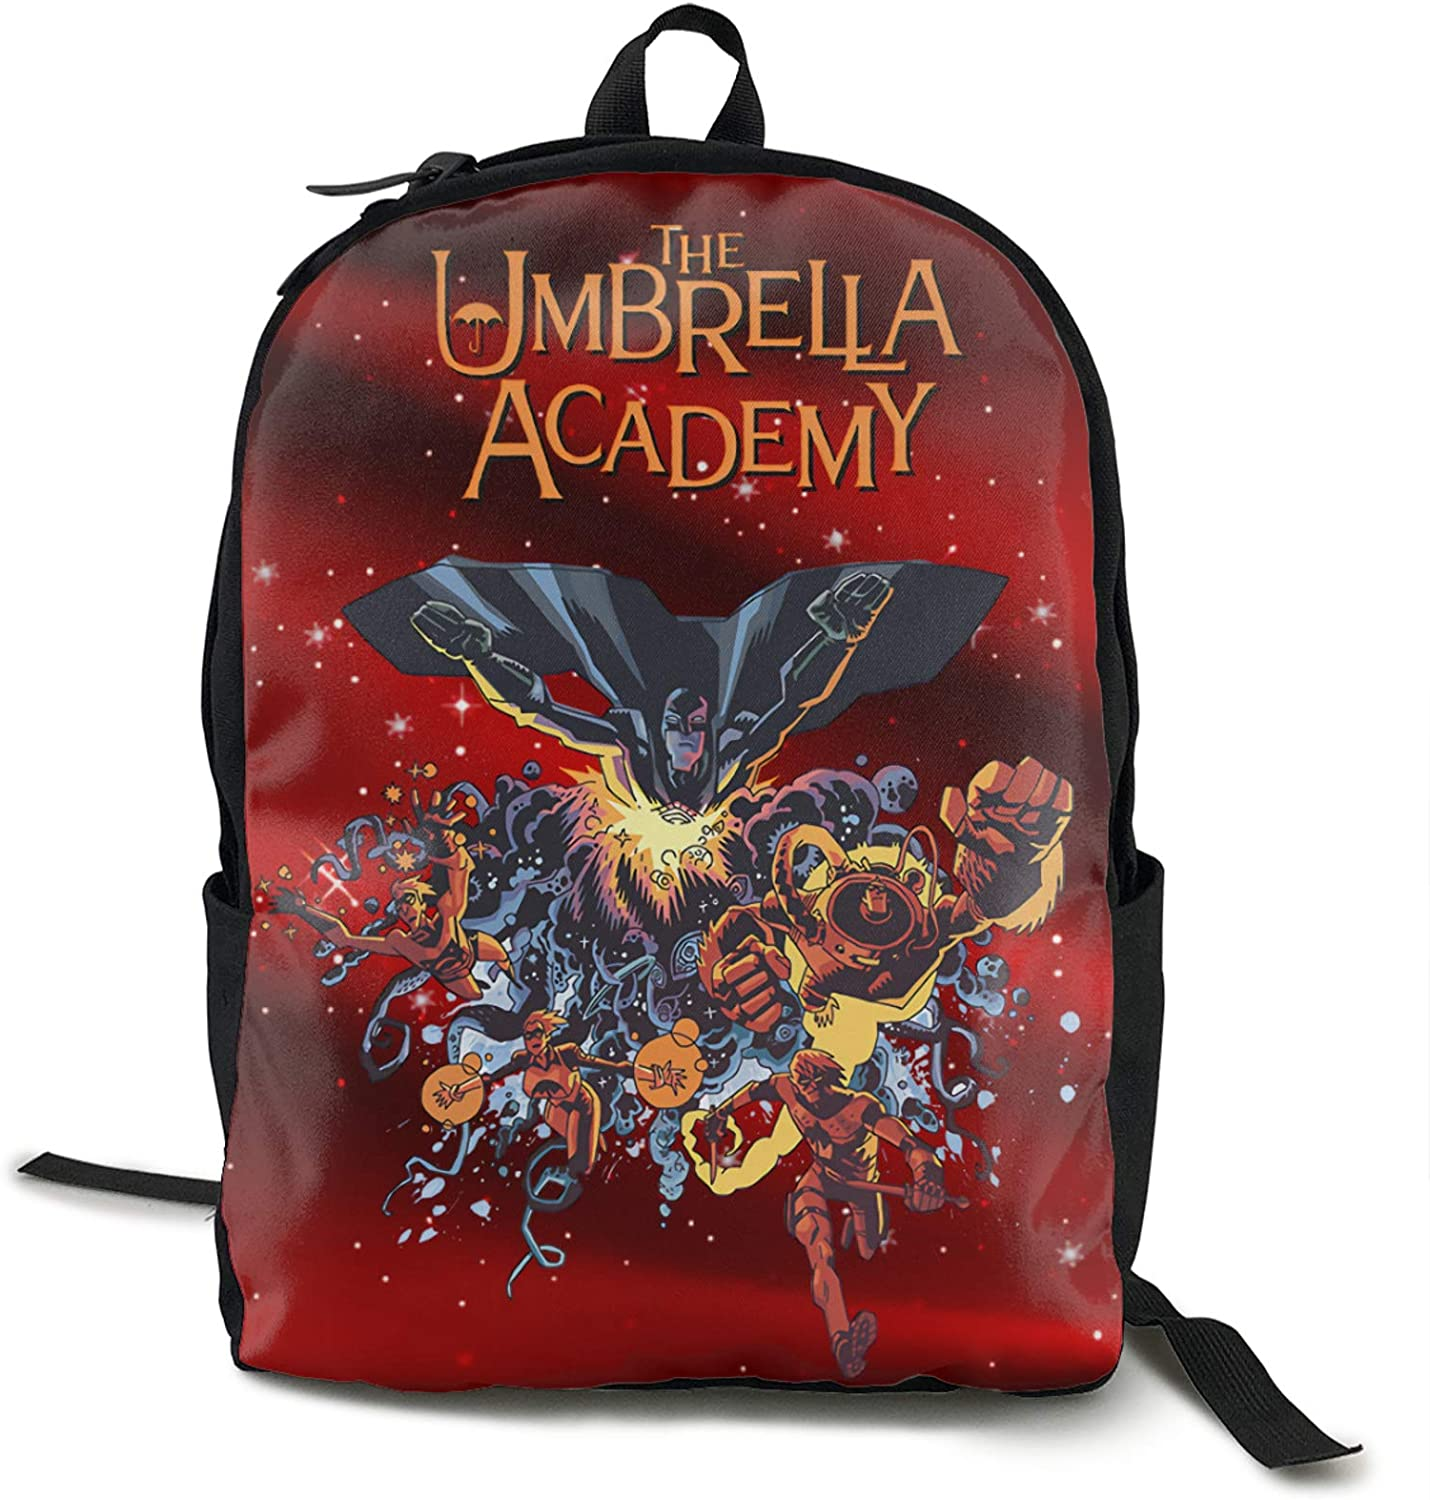 The Umbrella Academy Unisex Classic Backpack Schoolbag Laptop Daily Schoolbag